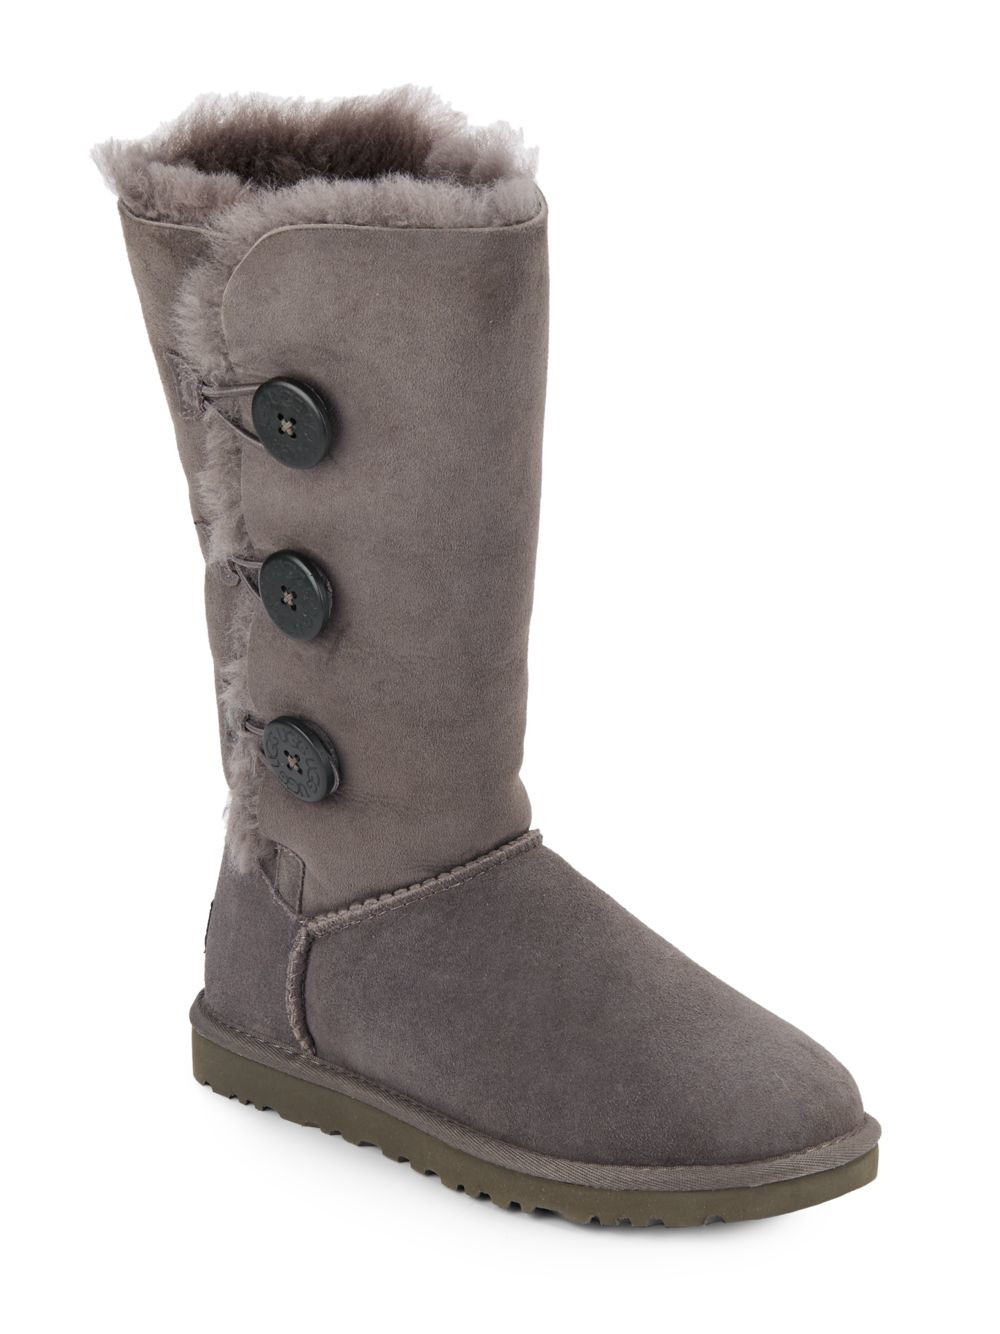 gray uggs buttons